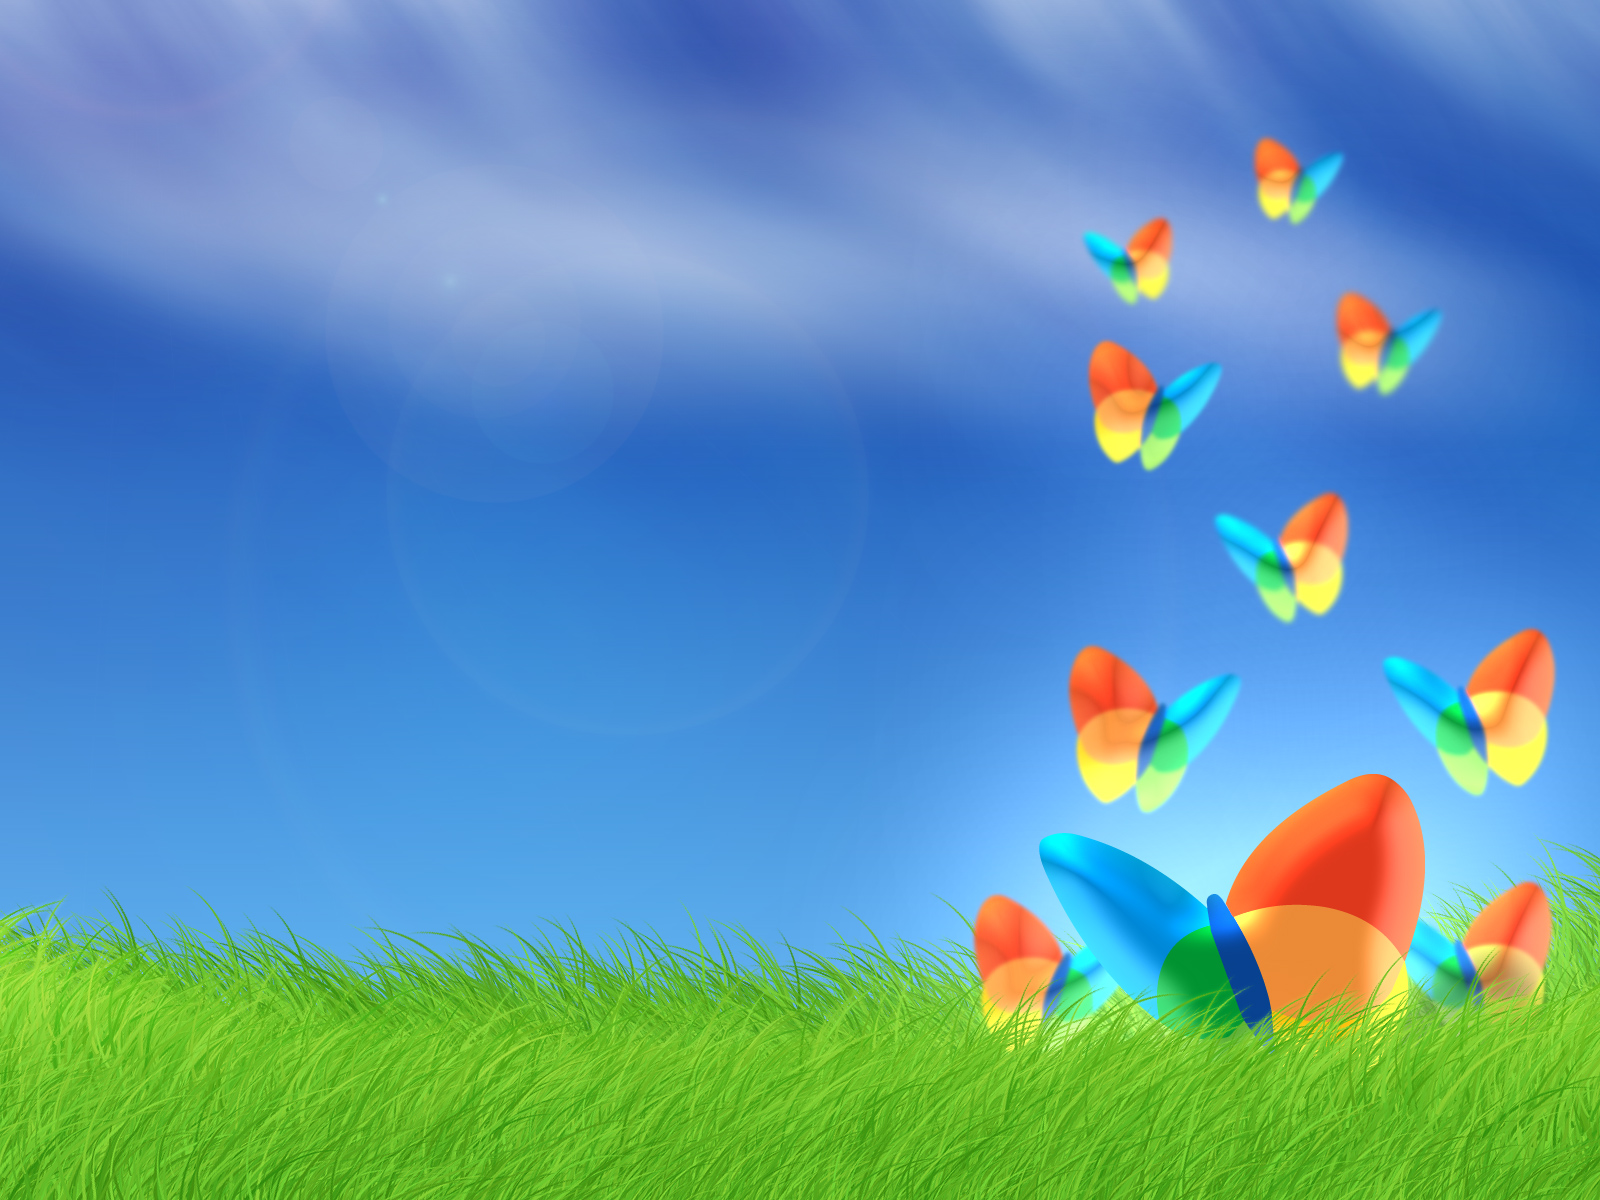 windows MSN Wallpaper HD  Nice Wallpapers